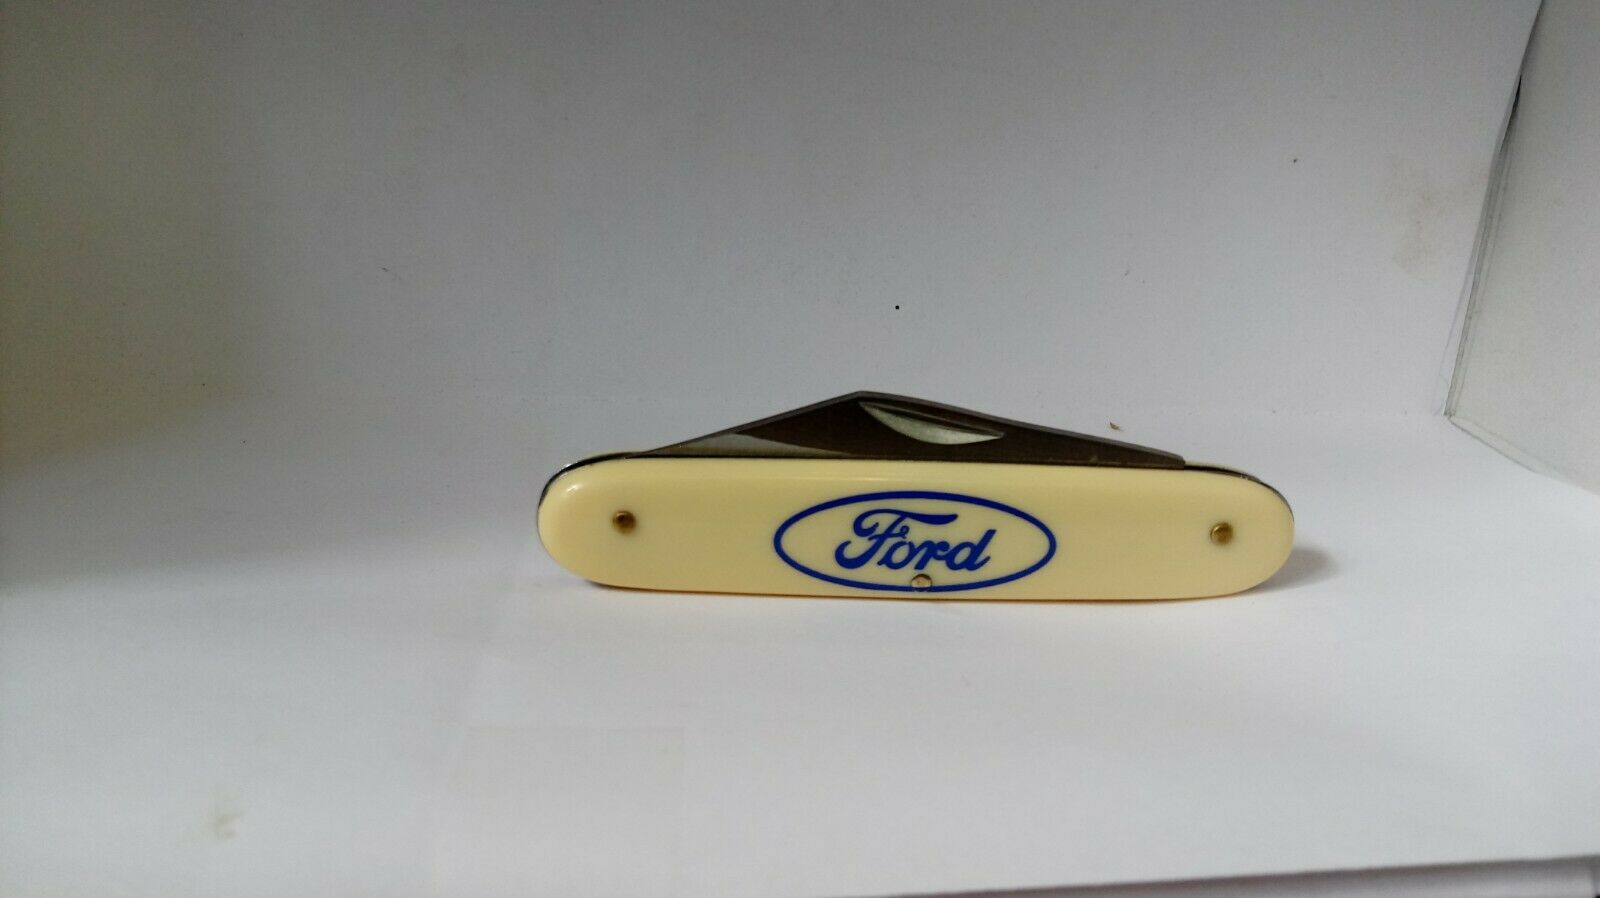 FORD LOGO in BLUE NOVELTY KNIFE   BY FROST CUTLERY